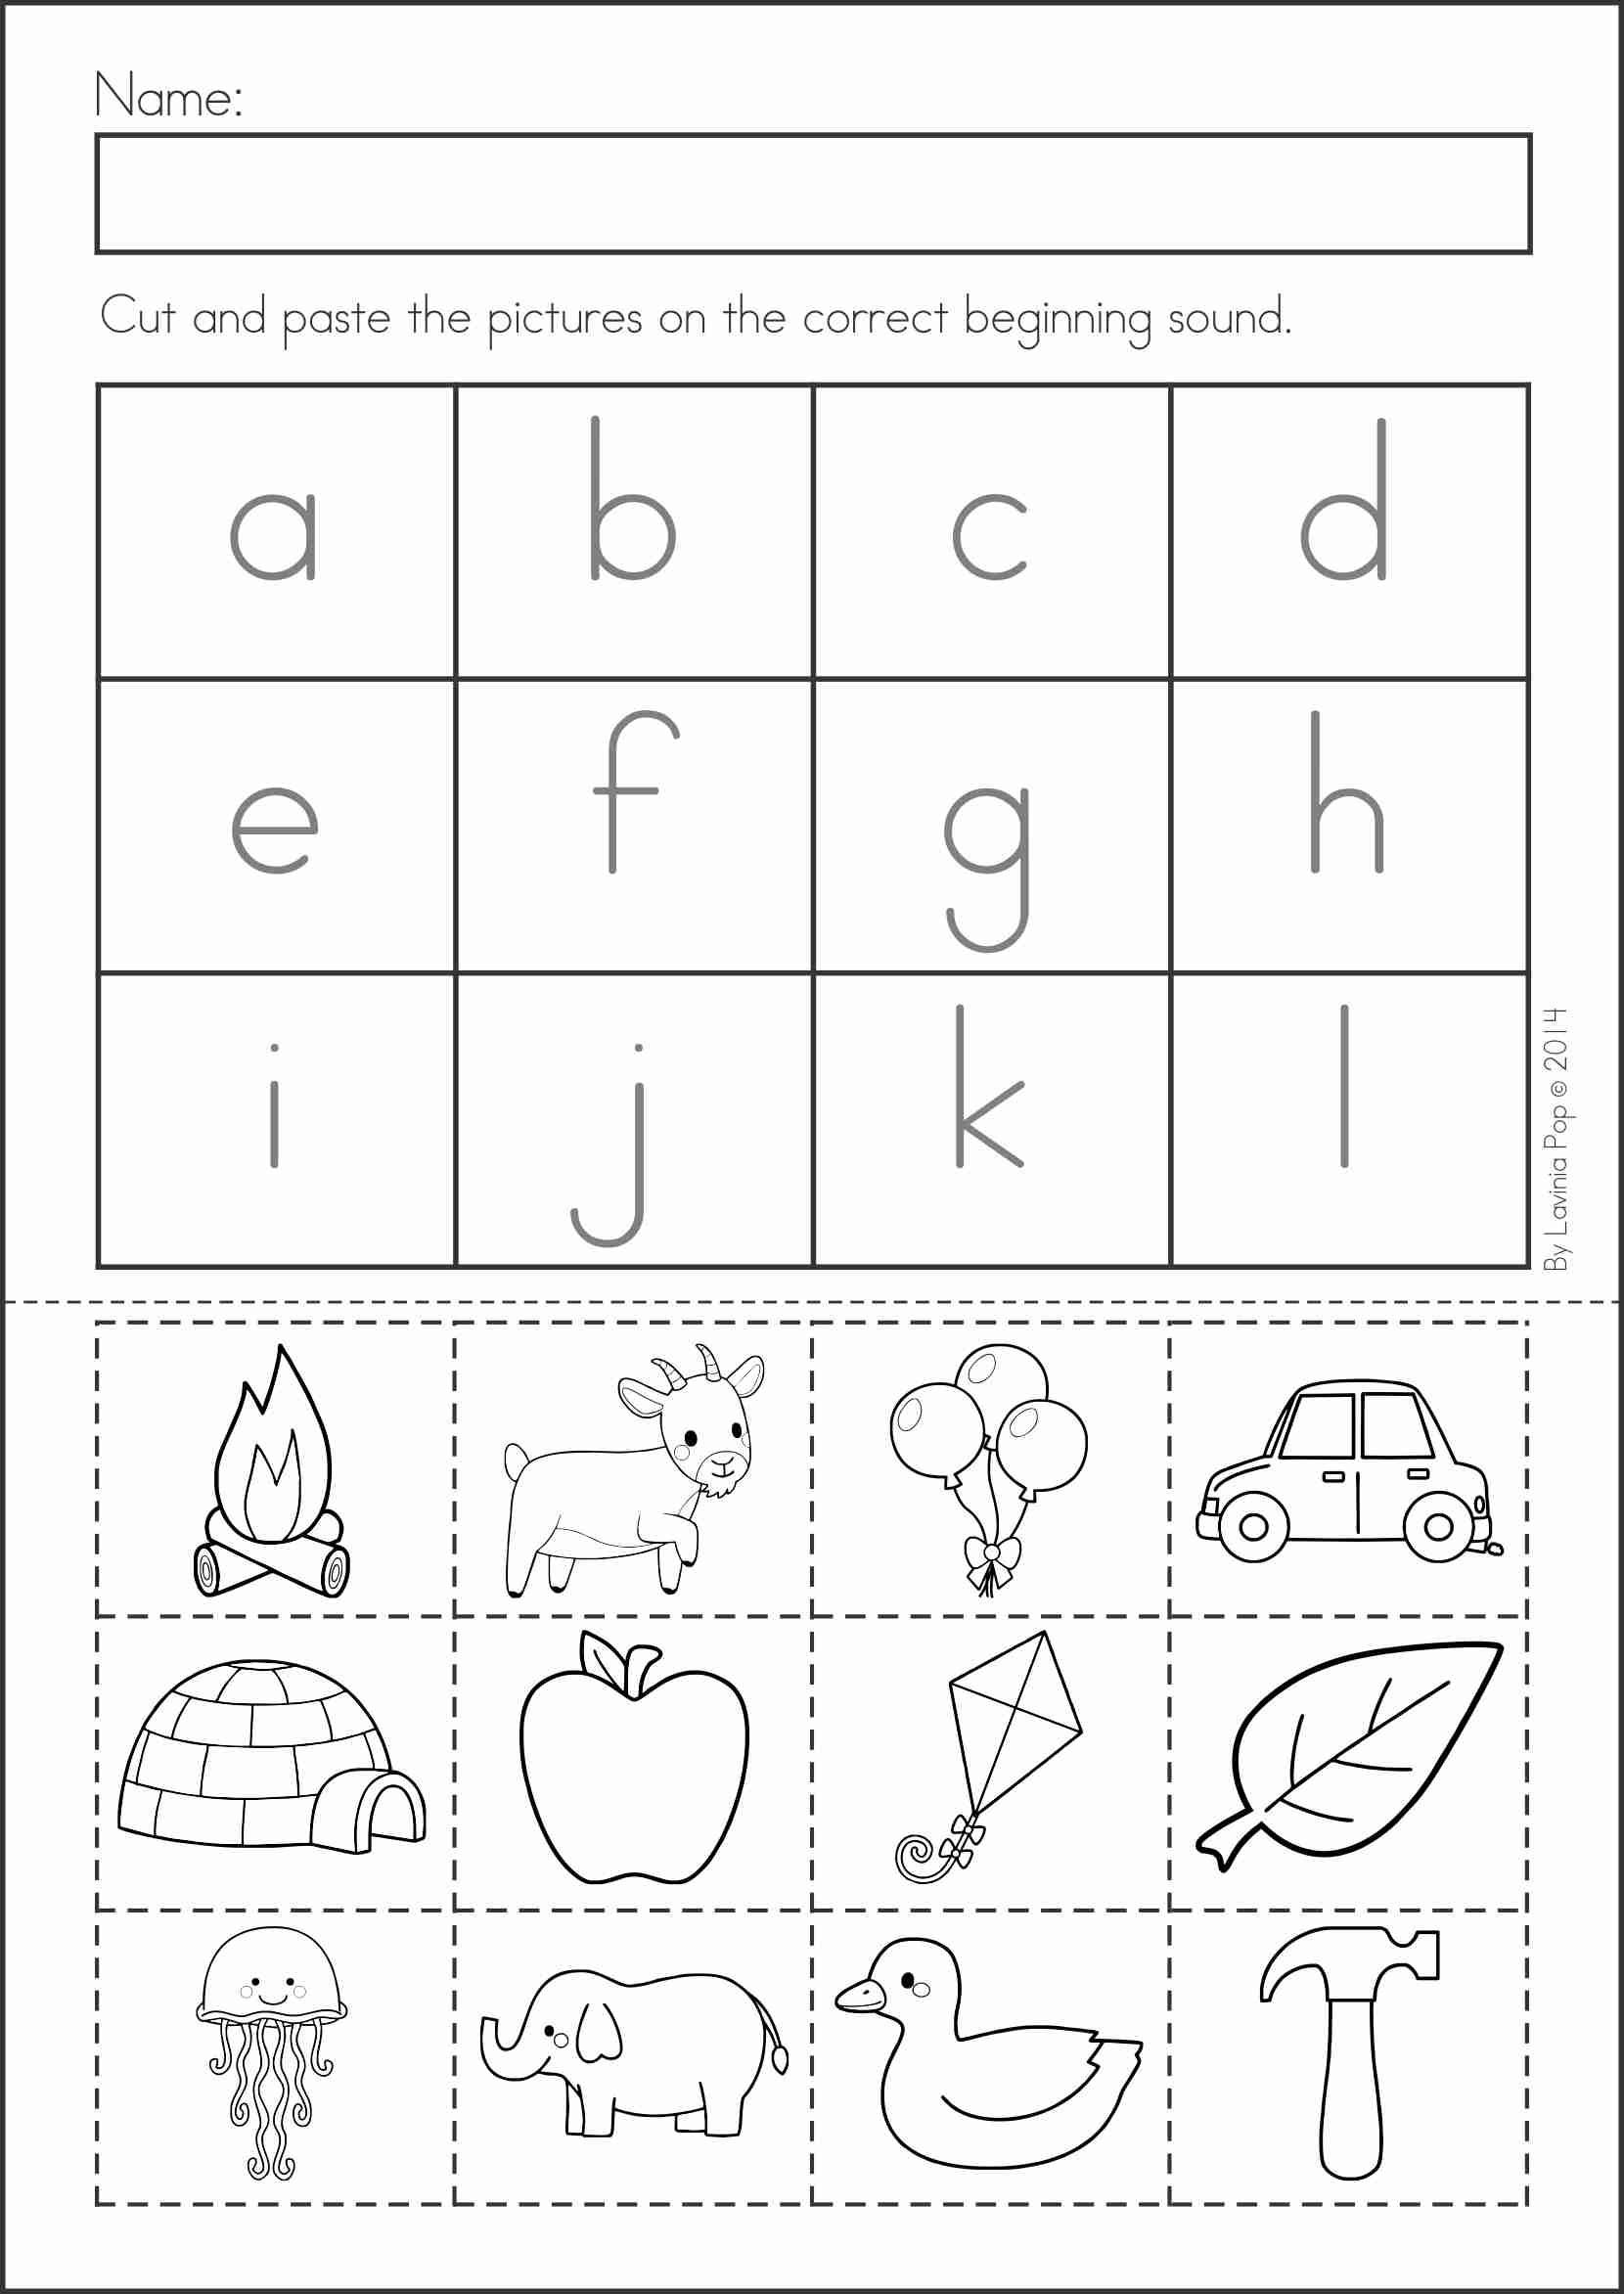 Free Worksheet Cut And Paste Worksheets For Preschoolers kindergarten winter literacy worksheets common core aligned summer review math activities 104 pages a page from